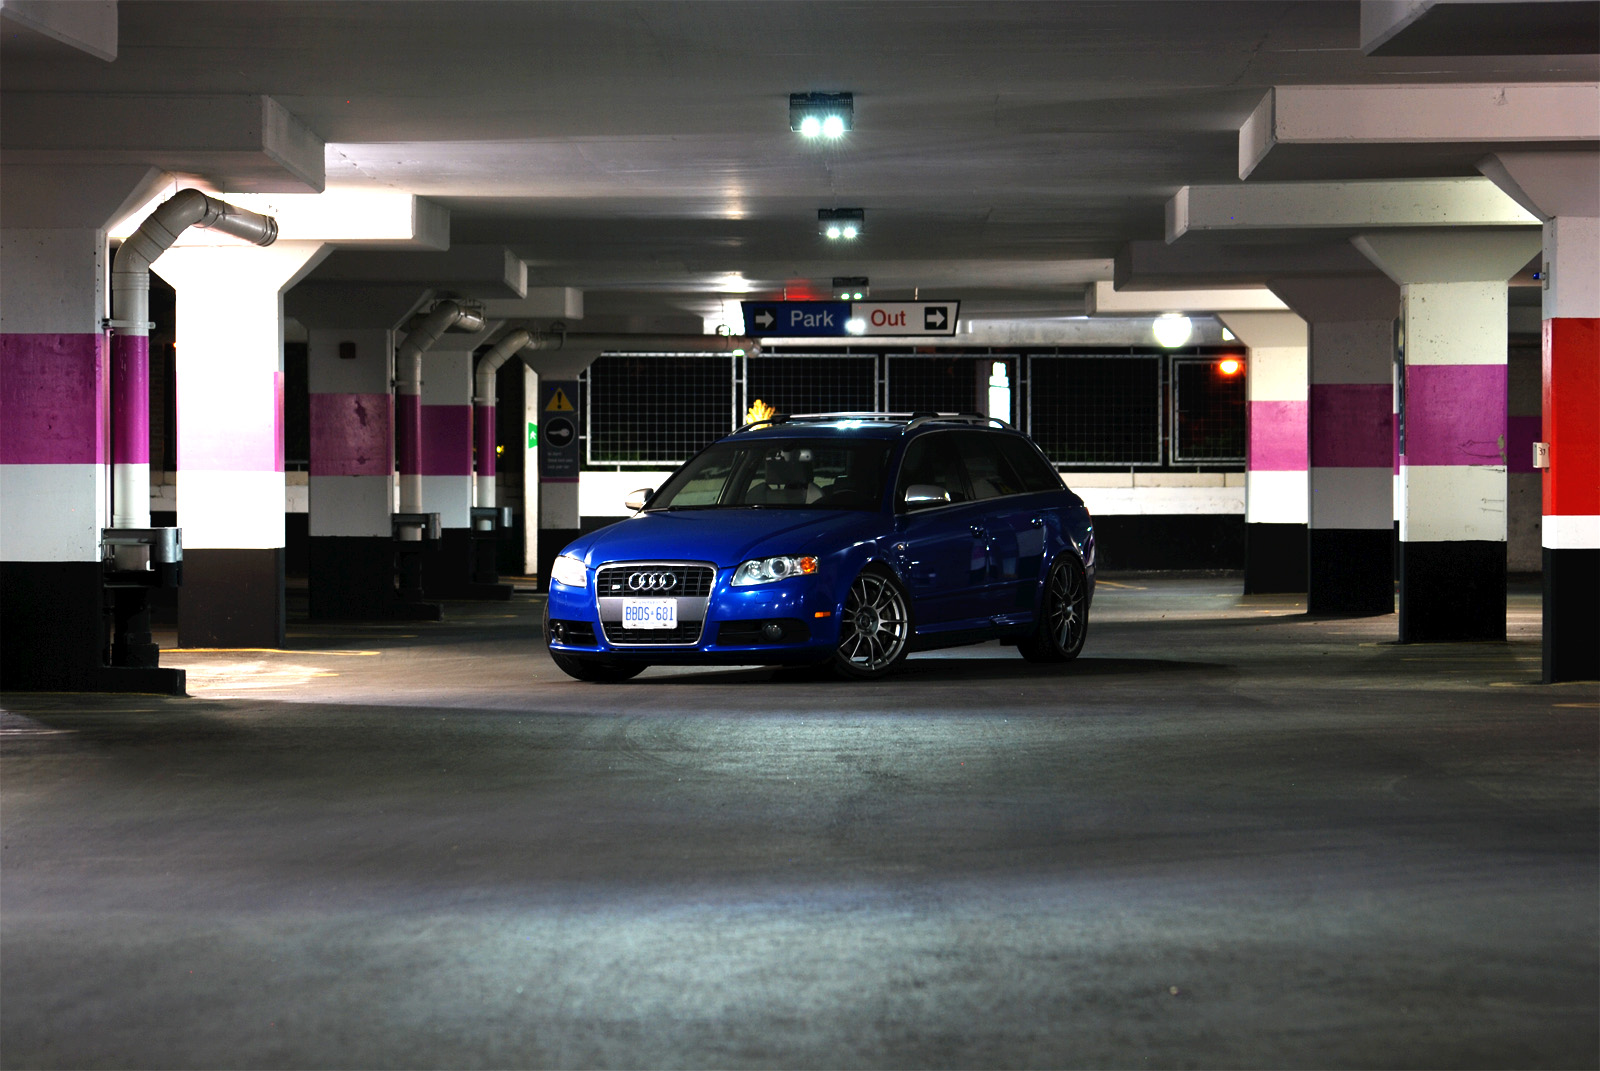 some photos i took last night in a parking garage